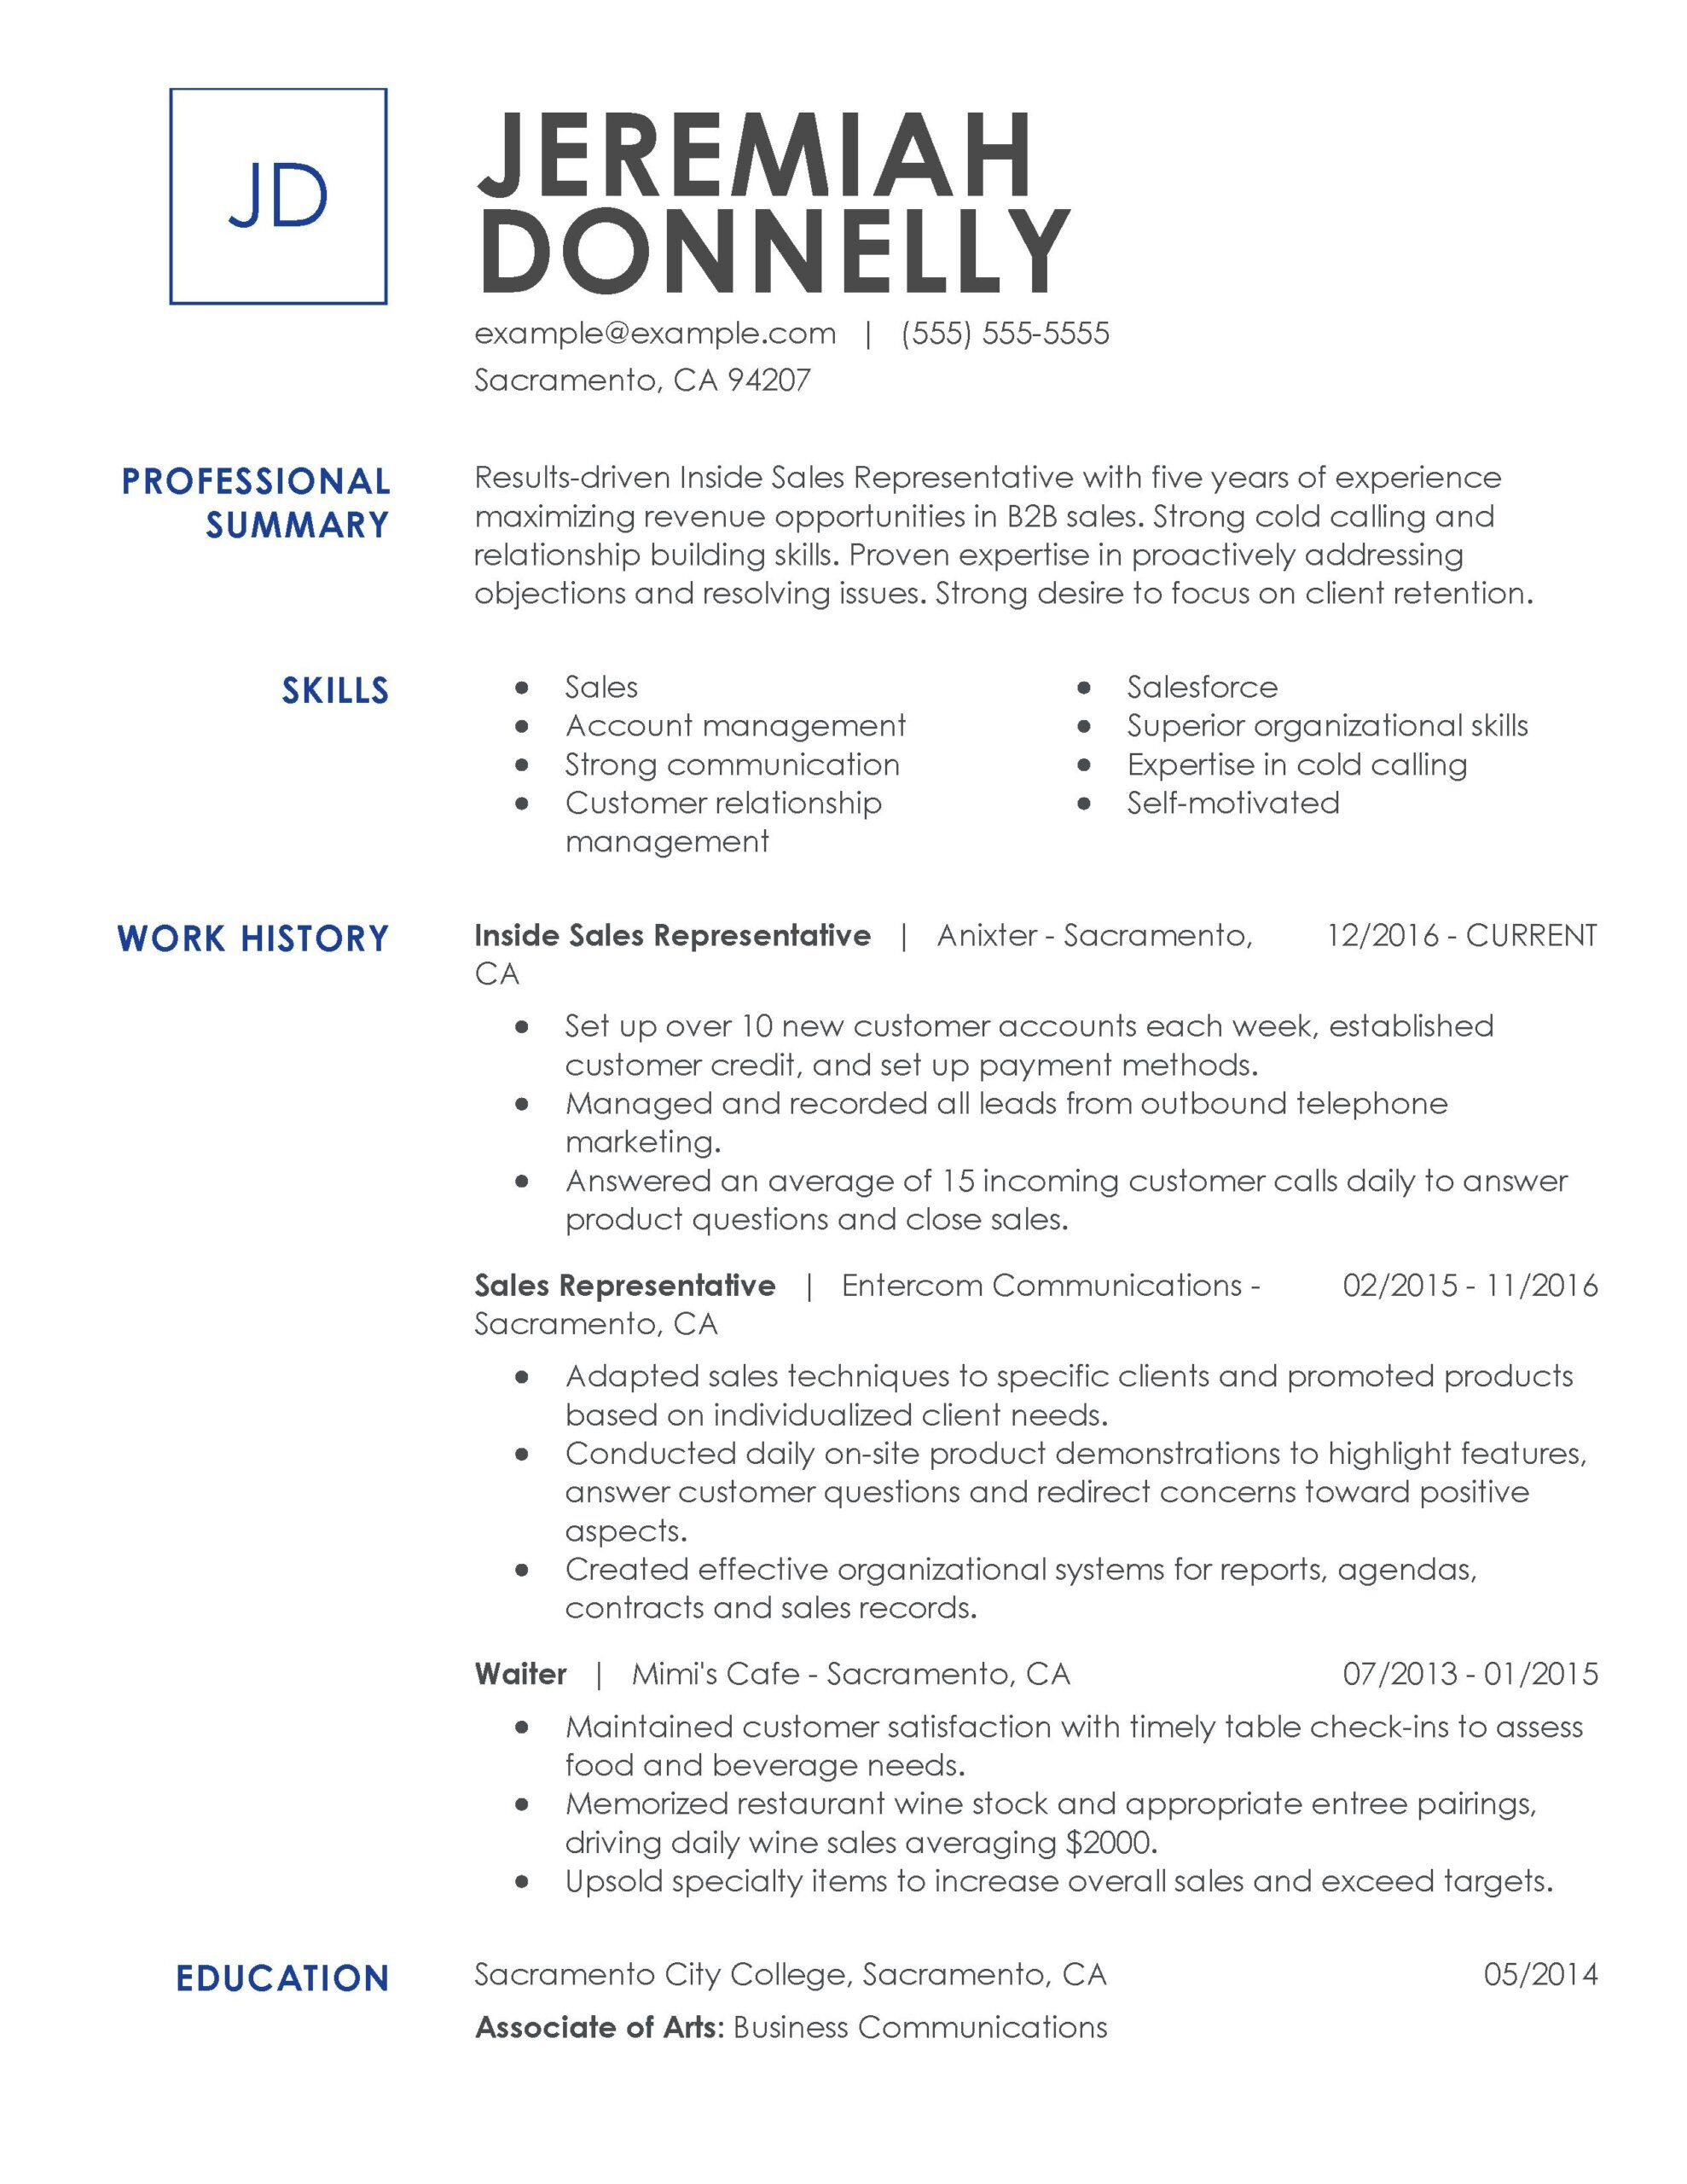 professional resume examples myperfectresume builder for jobs inside representative Resume Resume Builder For Sales Jobs